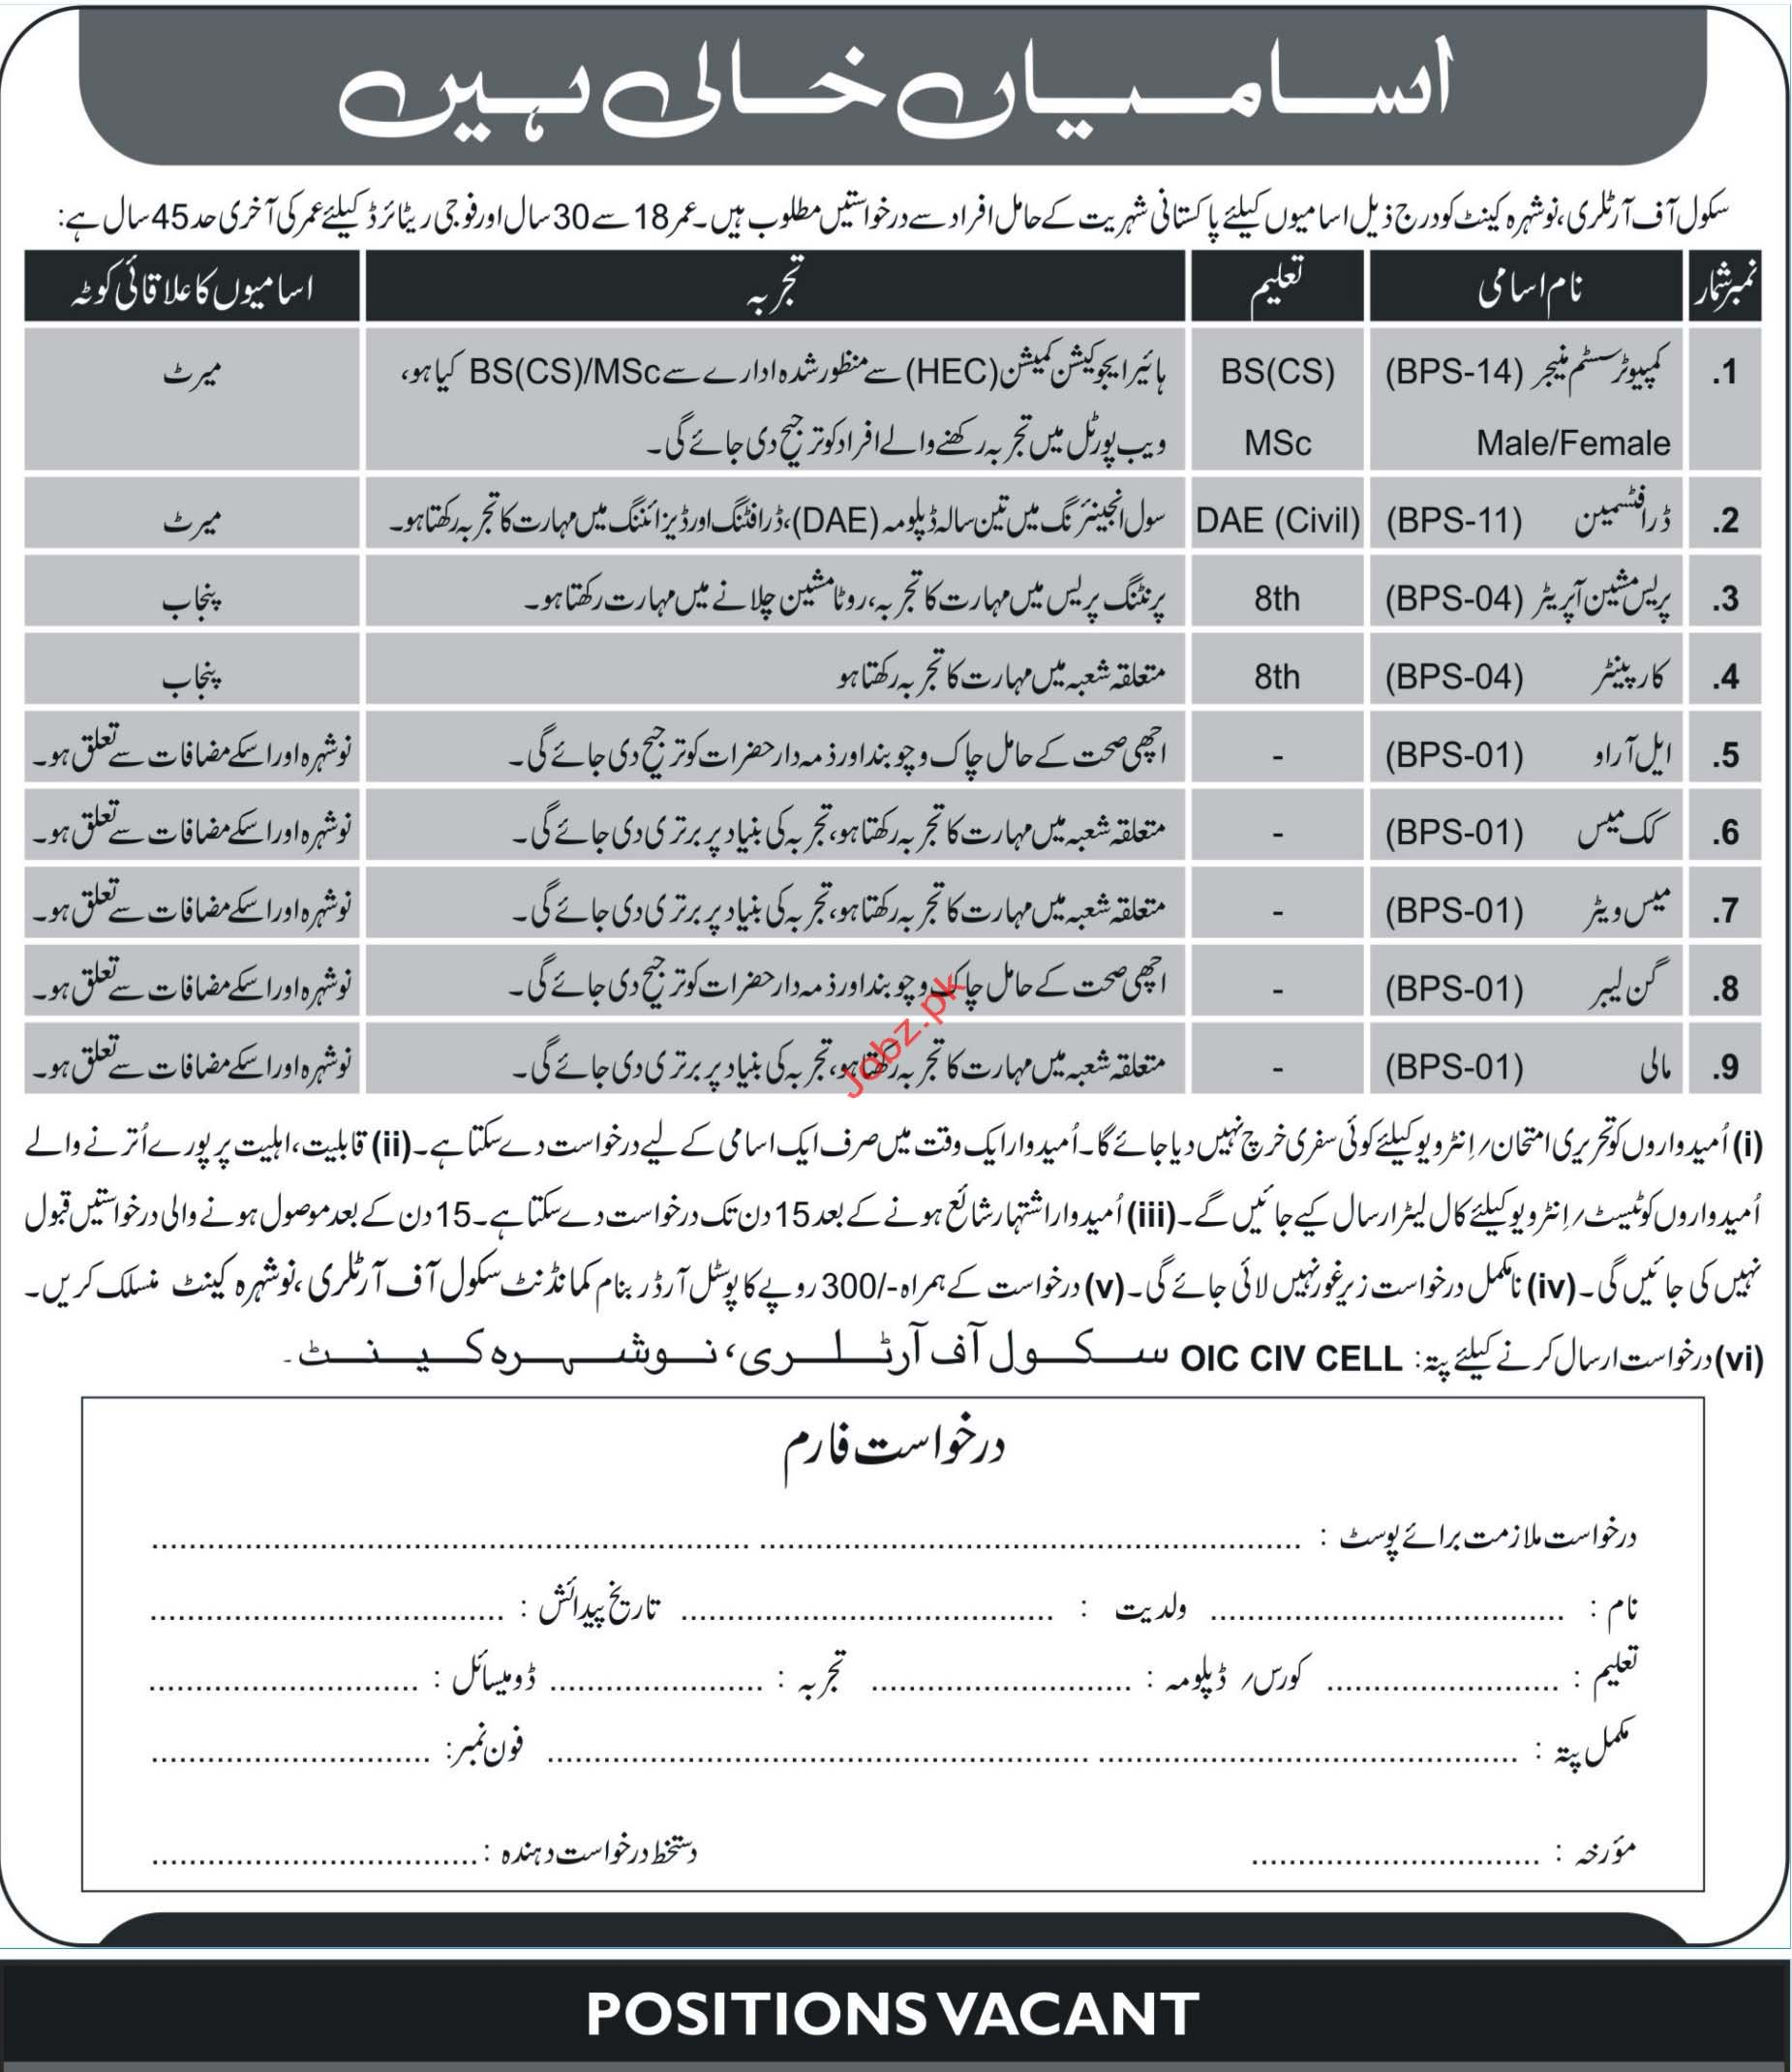 School of Artillery Computer System Manager Jobs 2018